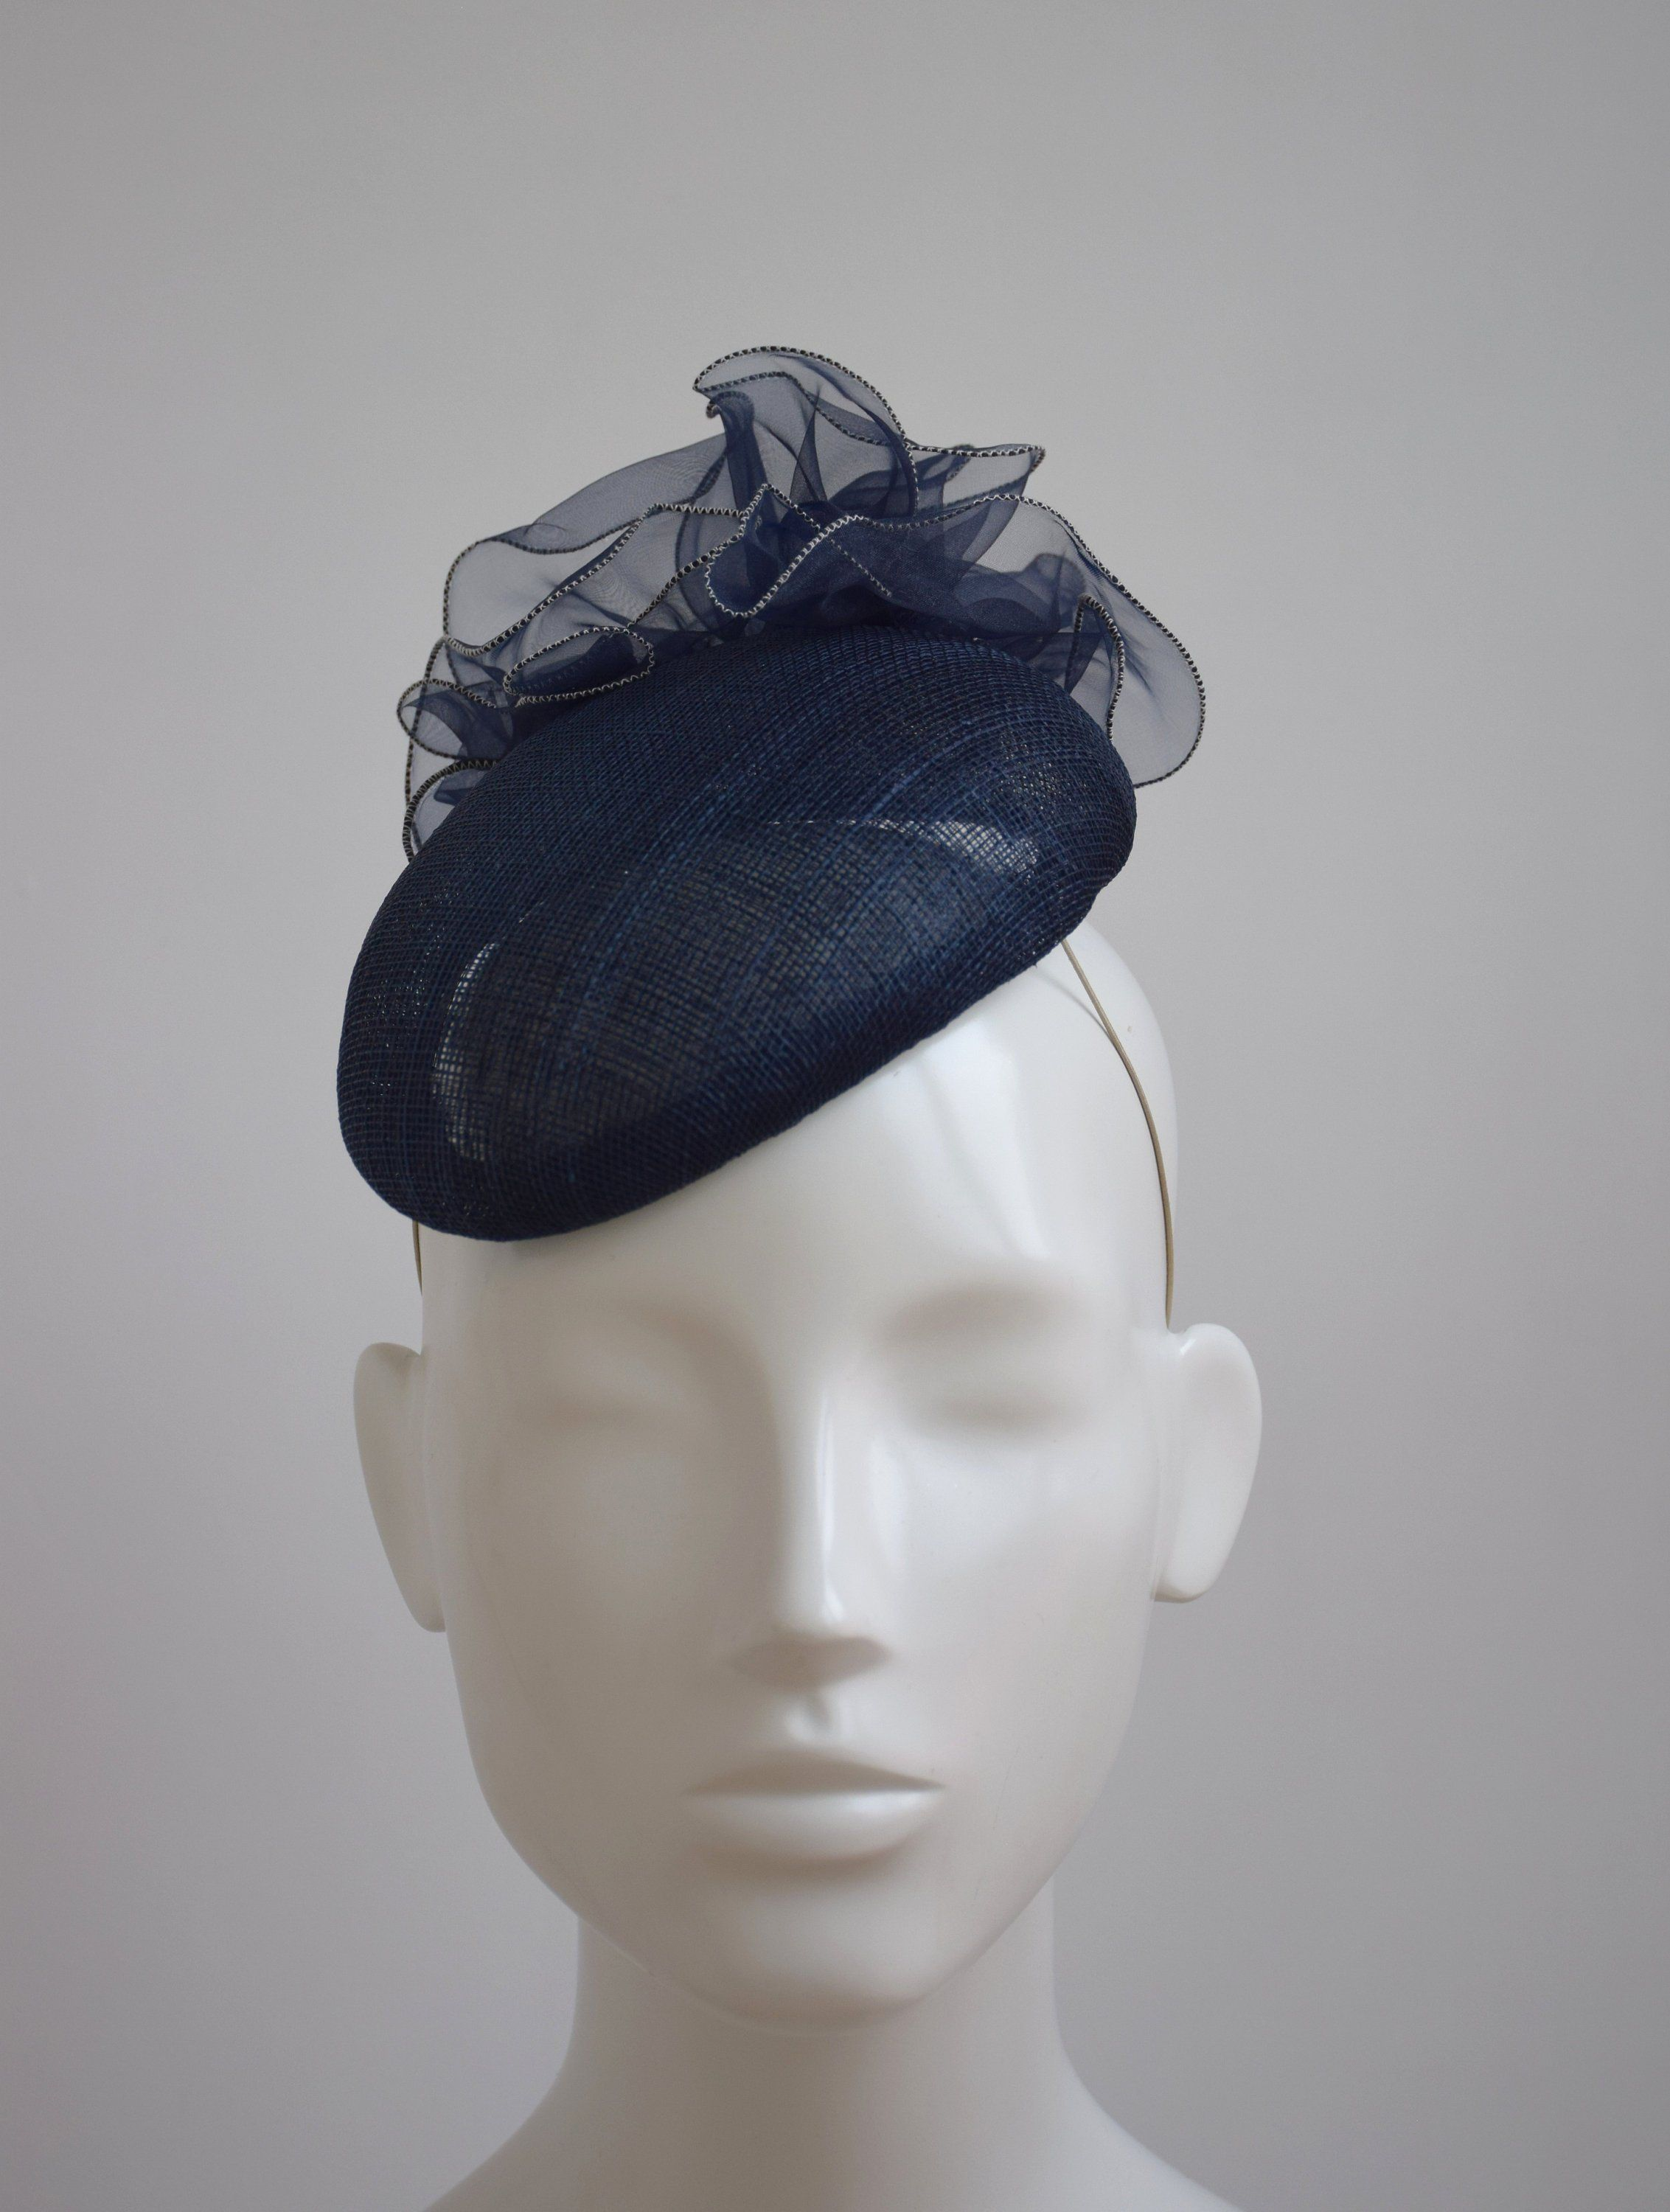 Dark Navy Cocktail Hat - Navy Blue Fascinator - Navy Wedding Hat - Navy Blue  Royal Ascot Hat - Navy Hatinator - Dark Navy Wedding Fascinator by ... 1d27c603b7e